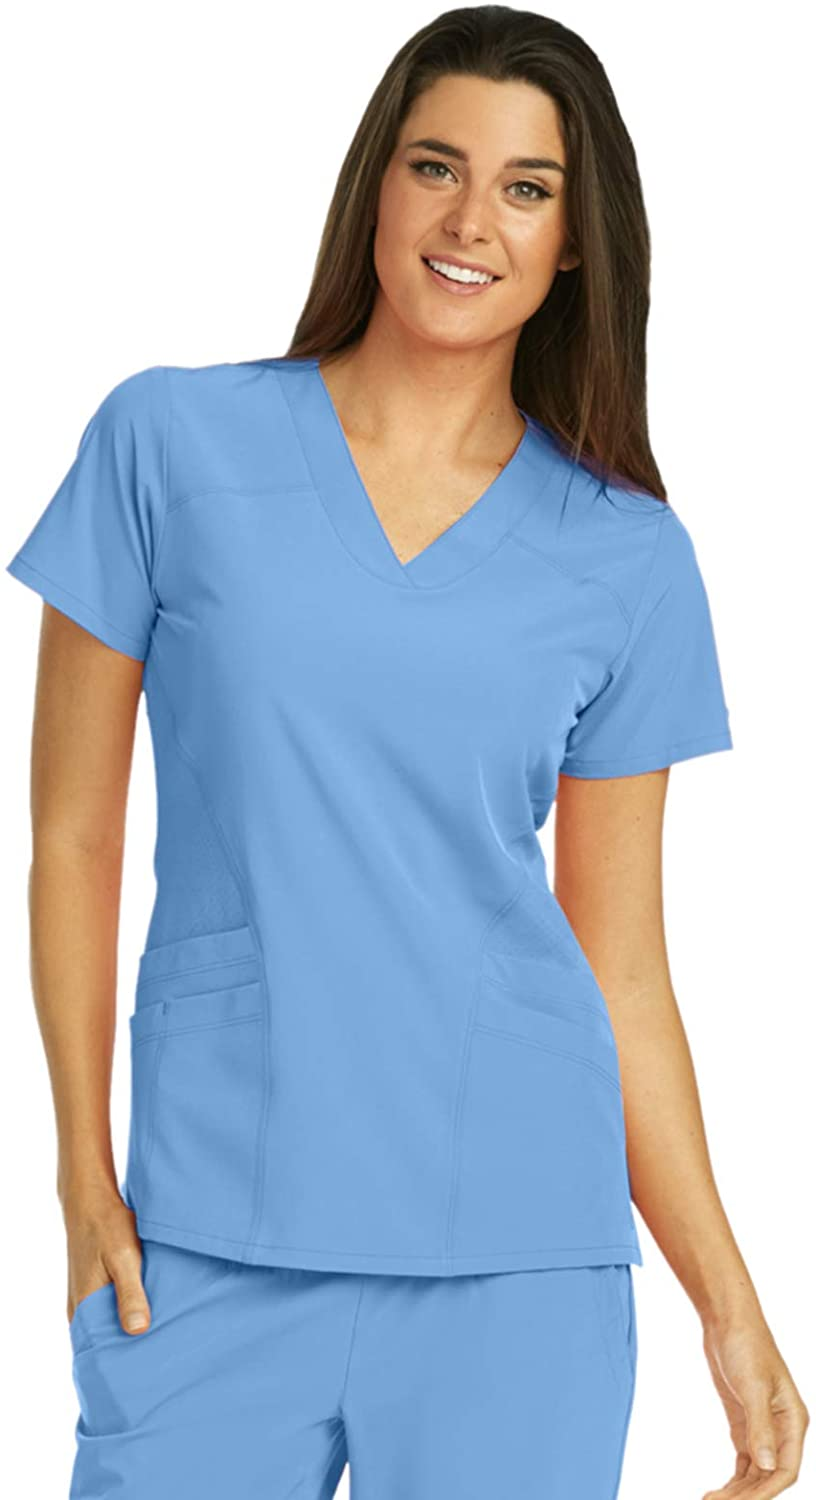 BARCO One 5106 Women's V-Neck Scrub Top Ciel Blue 4XL